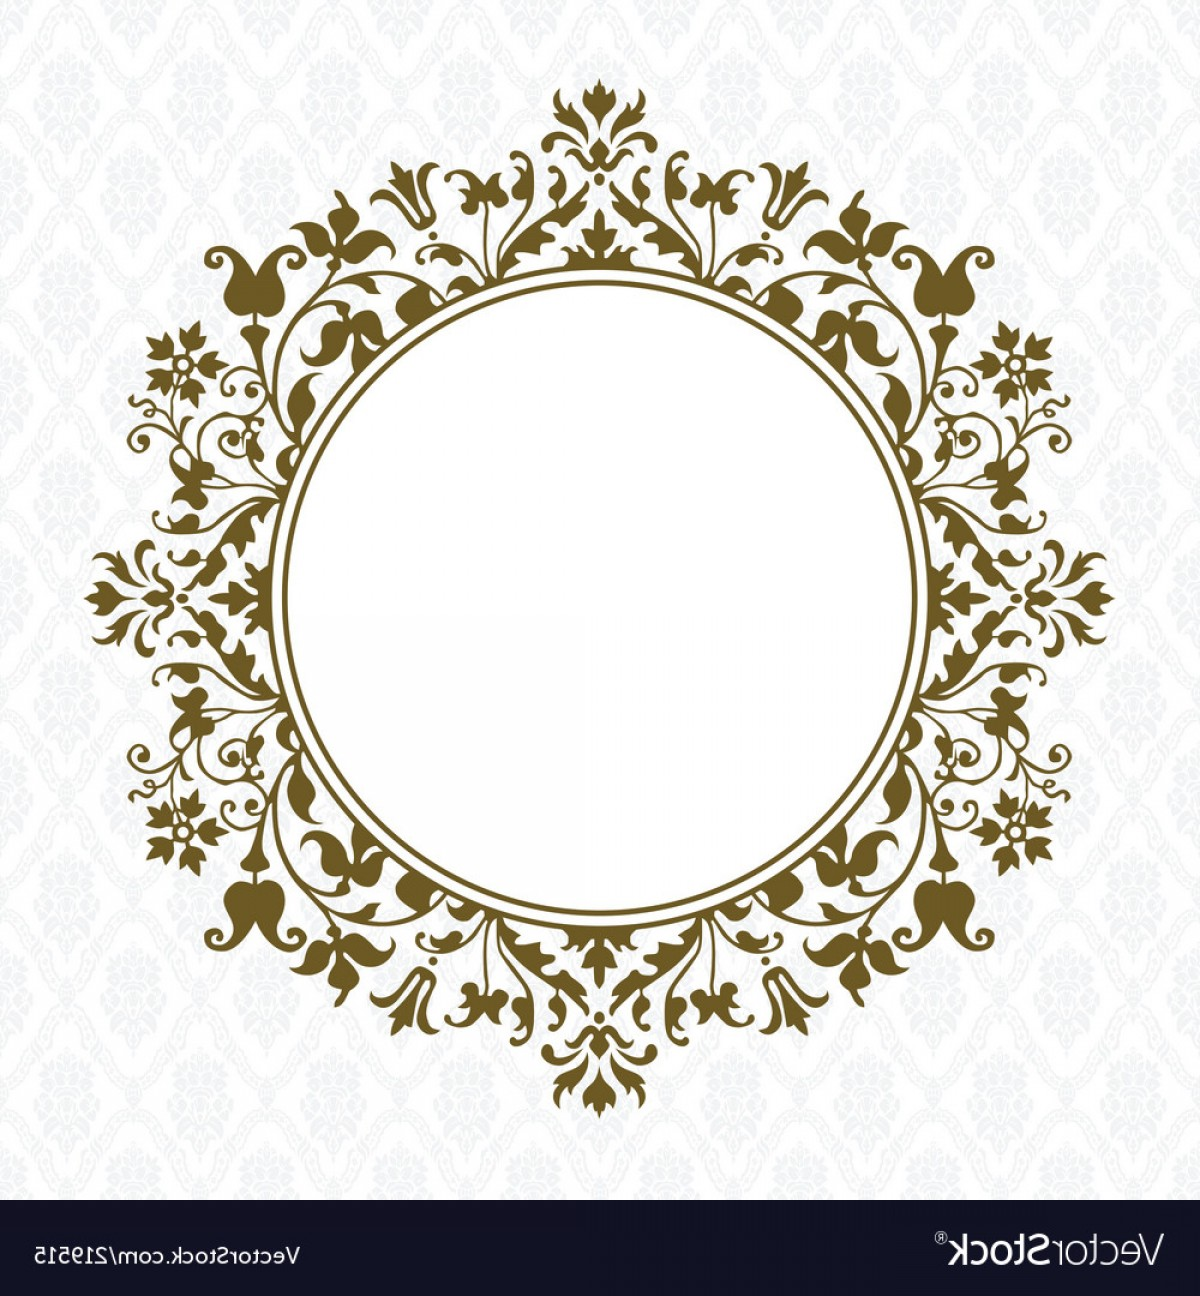 Square Gold Frame Vector PNG: Gold Round Floral Frame Vector